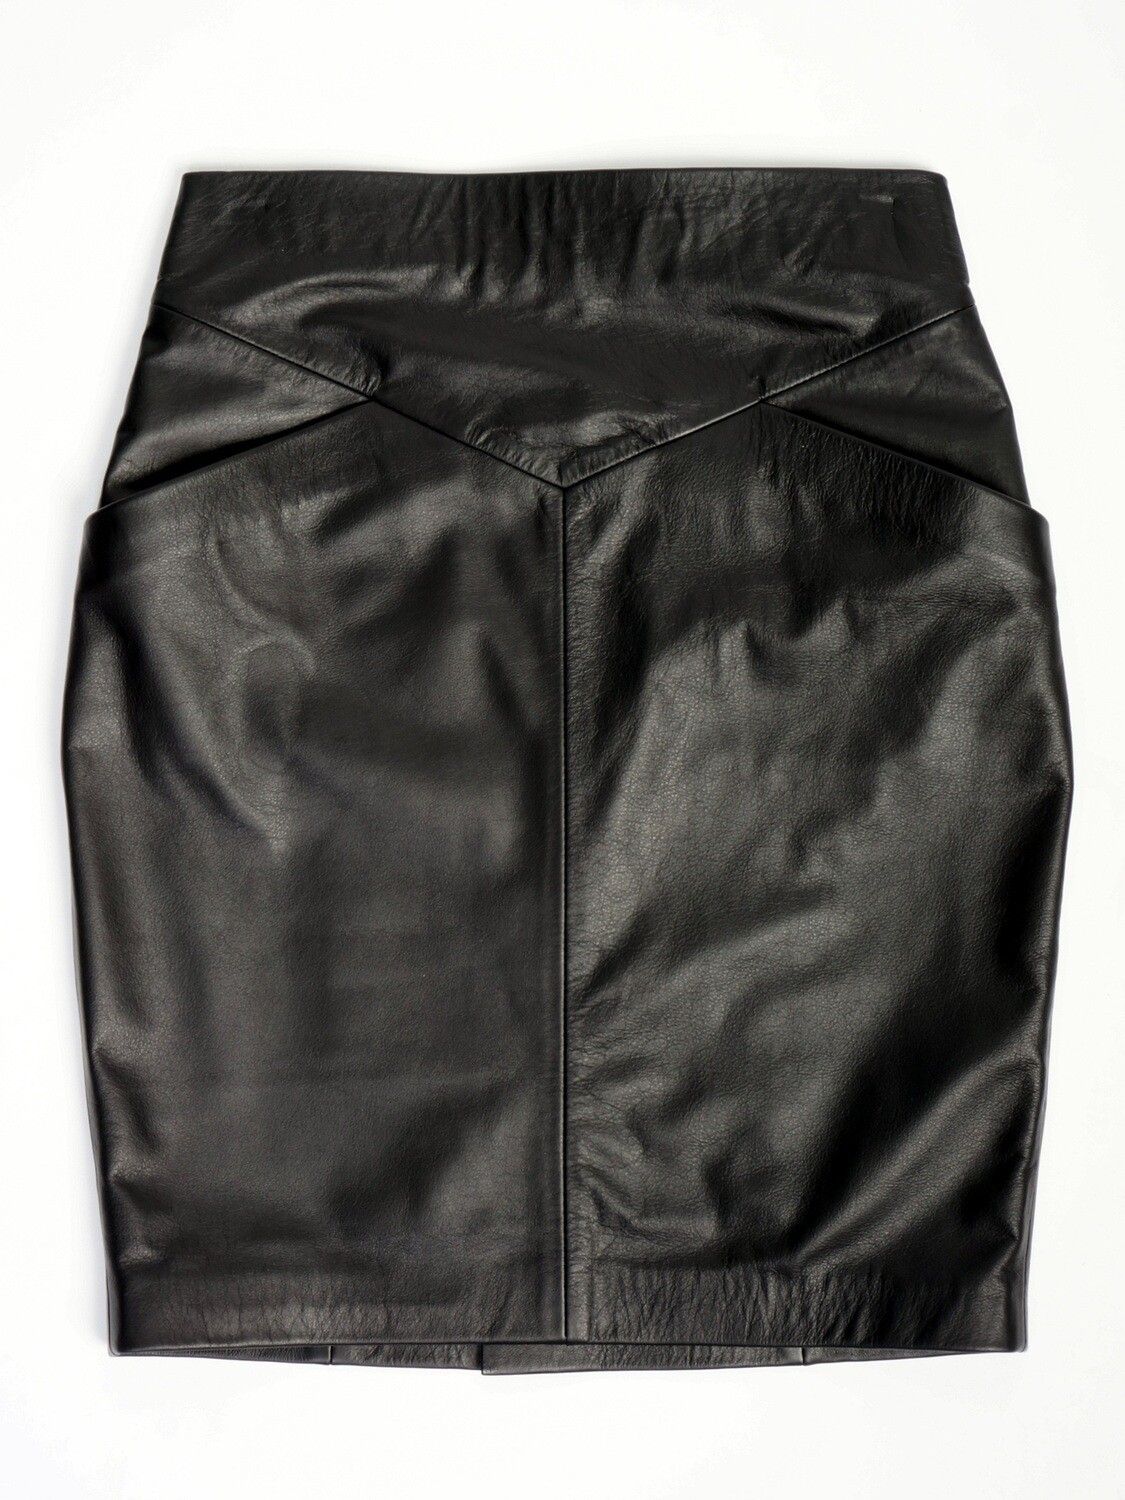 Leather Pencil Skirt Knees Pockets